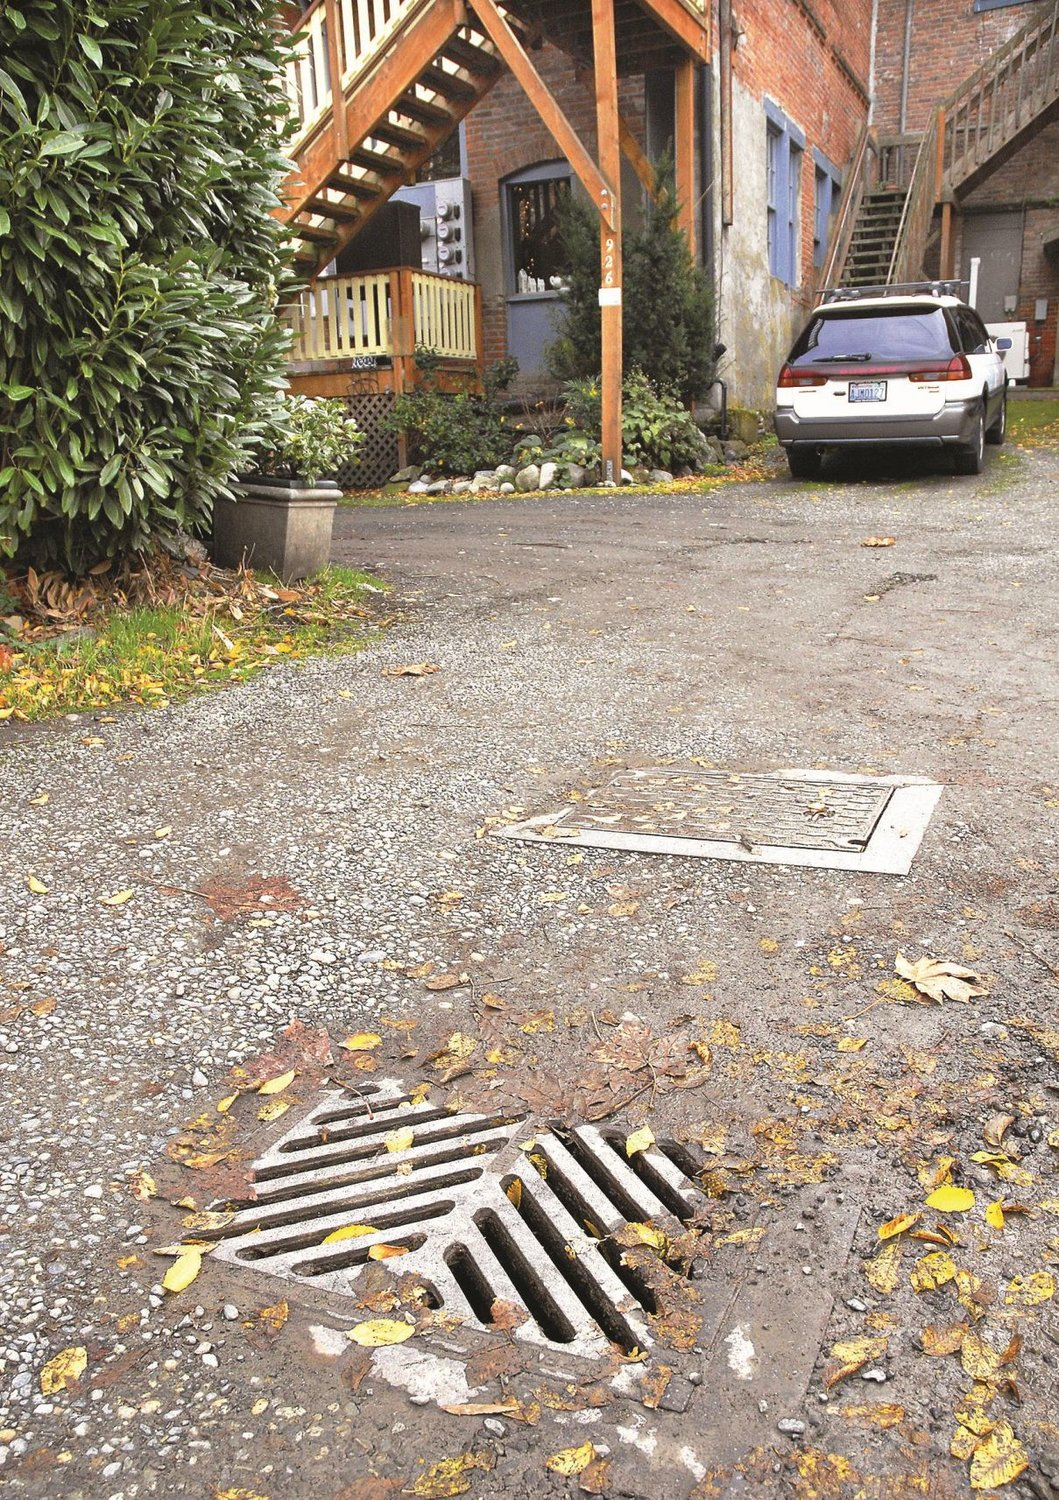 This drain located in a parking lot behind the eisenbeis building in port townsend